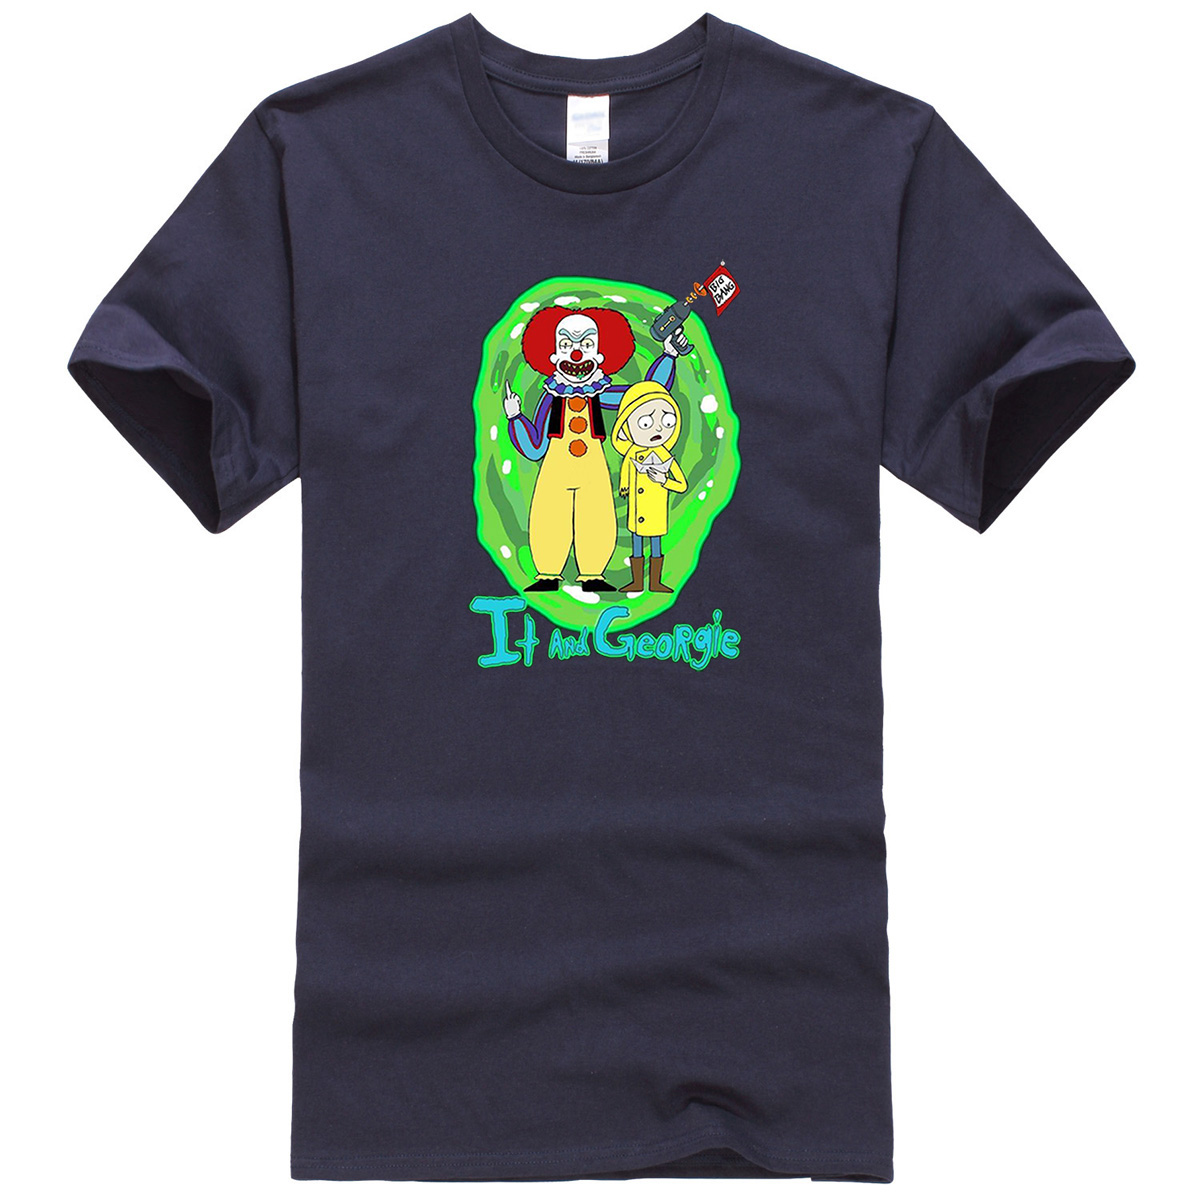 Funny Rick And Morty /_ IT T-Shirt Tee S-6XL Hot New Trend US 2019